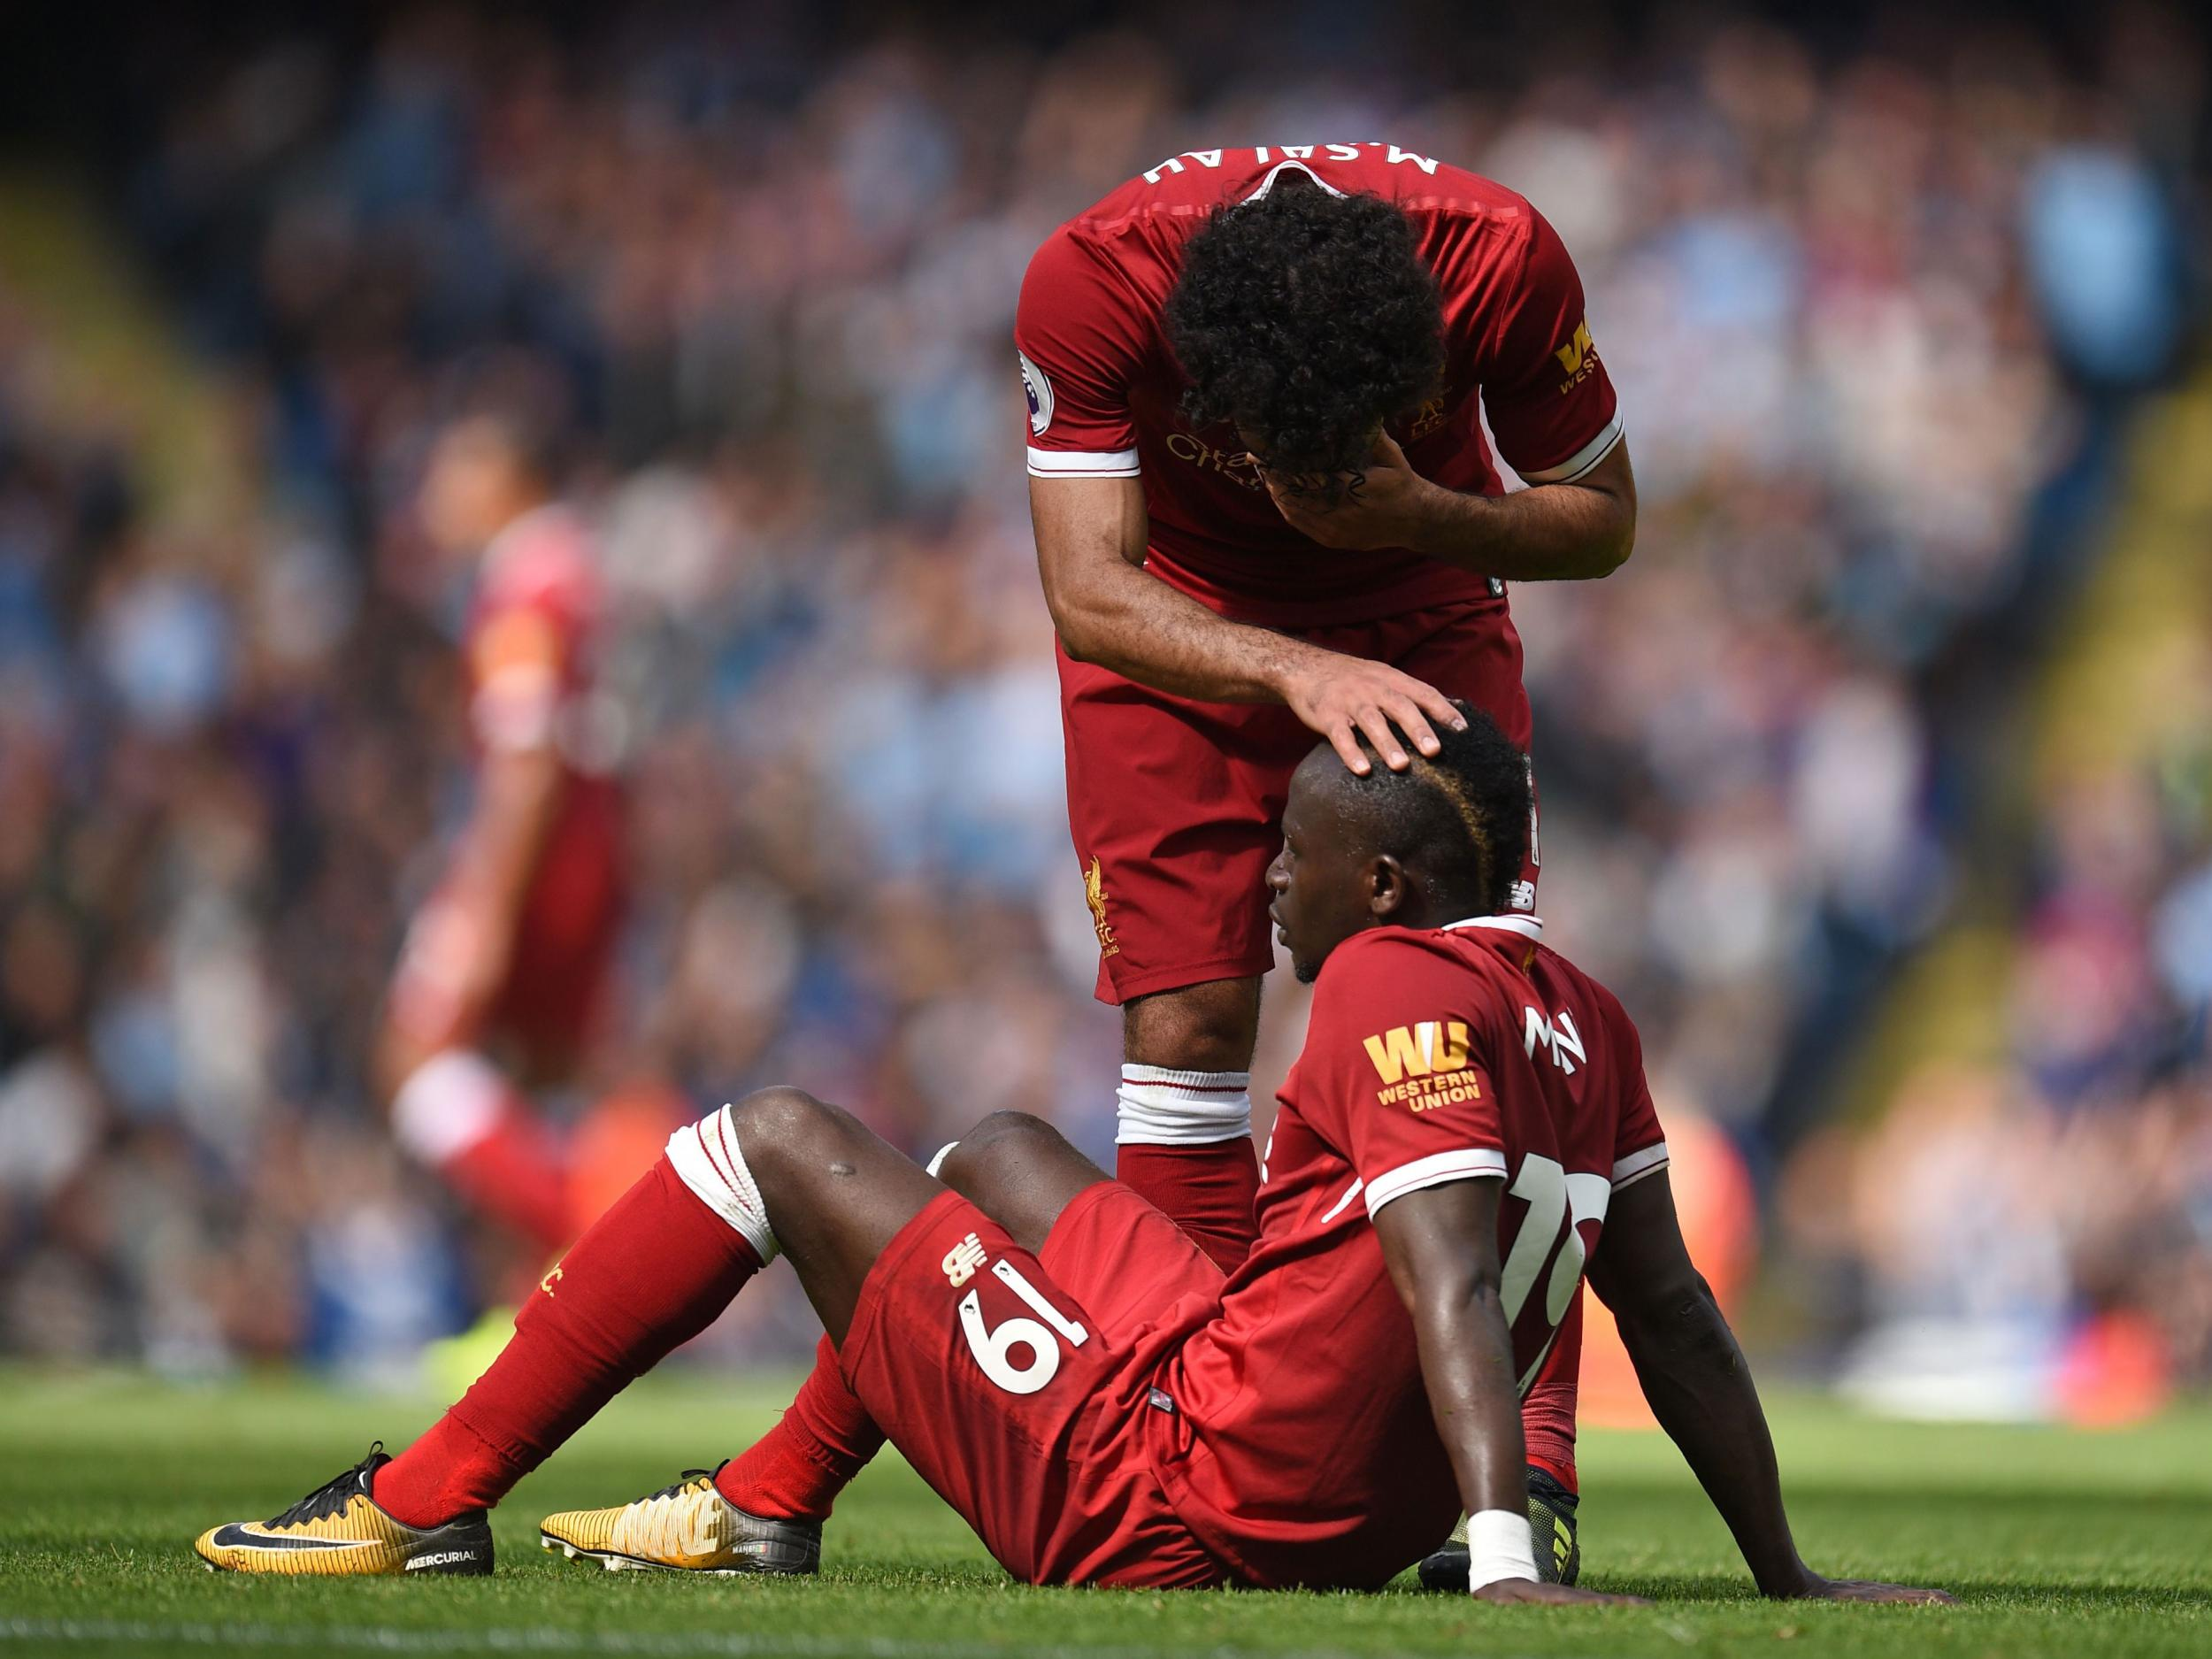 Liverpool had more than Sadio Mane's sending-off to be worried about in heavy Manchester City defeat